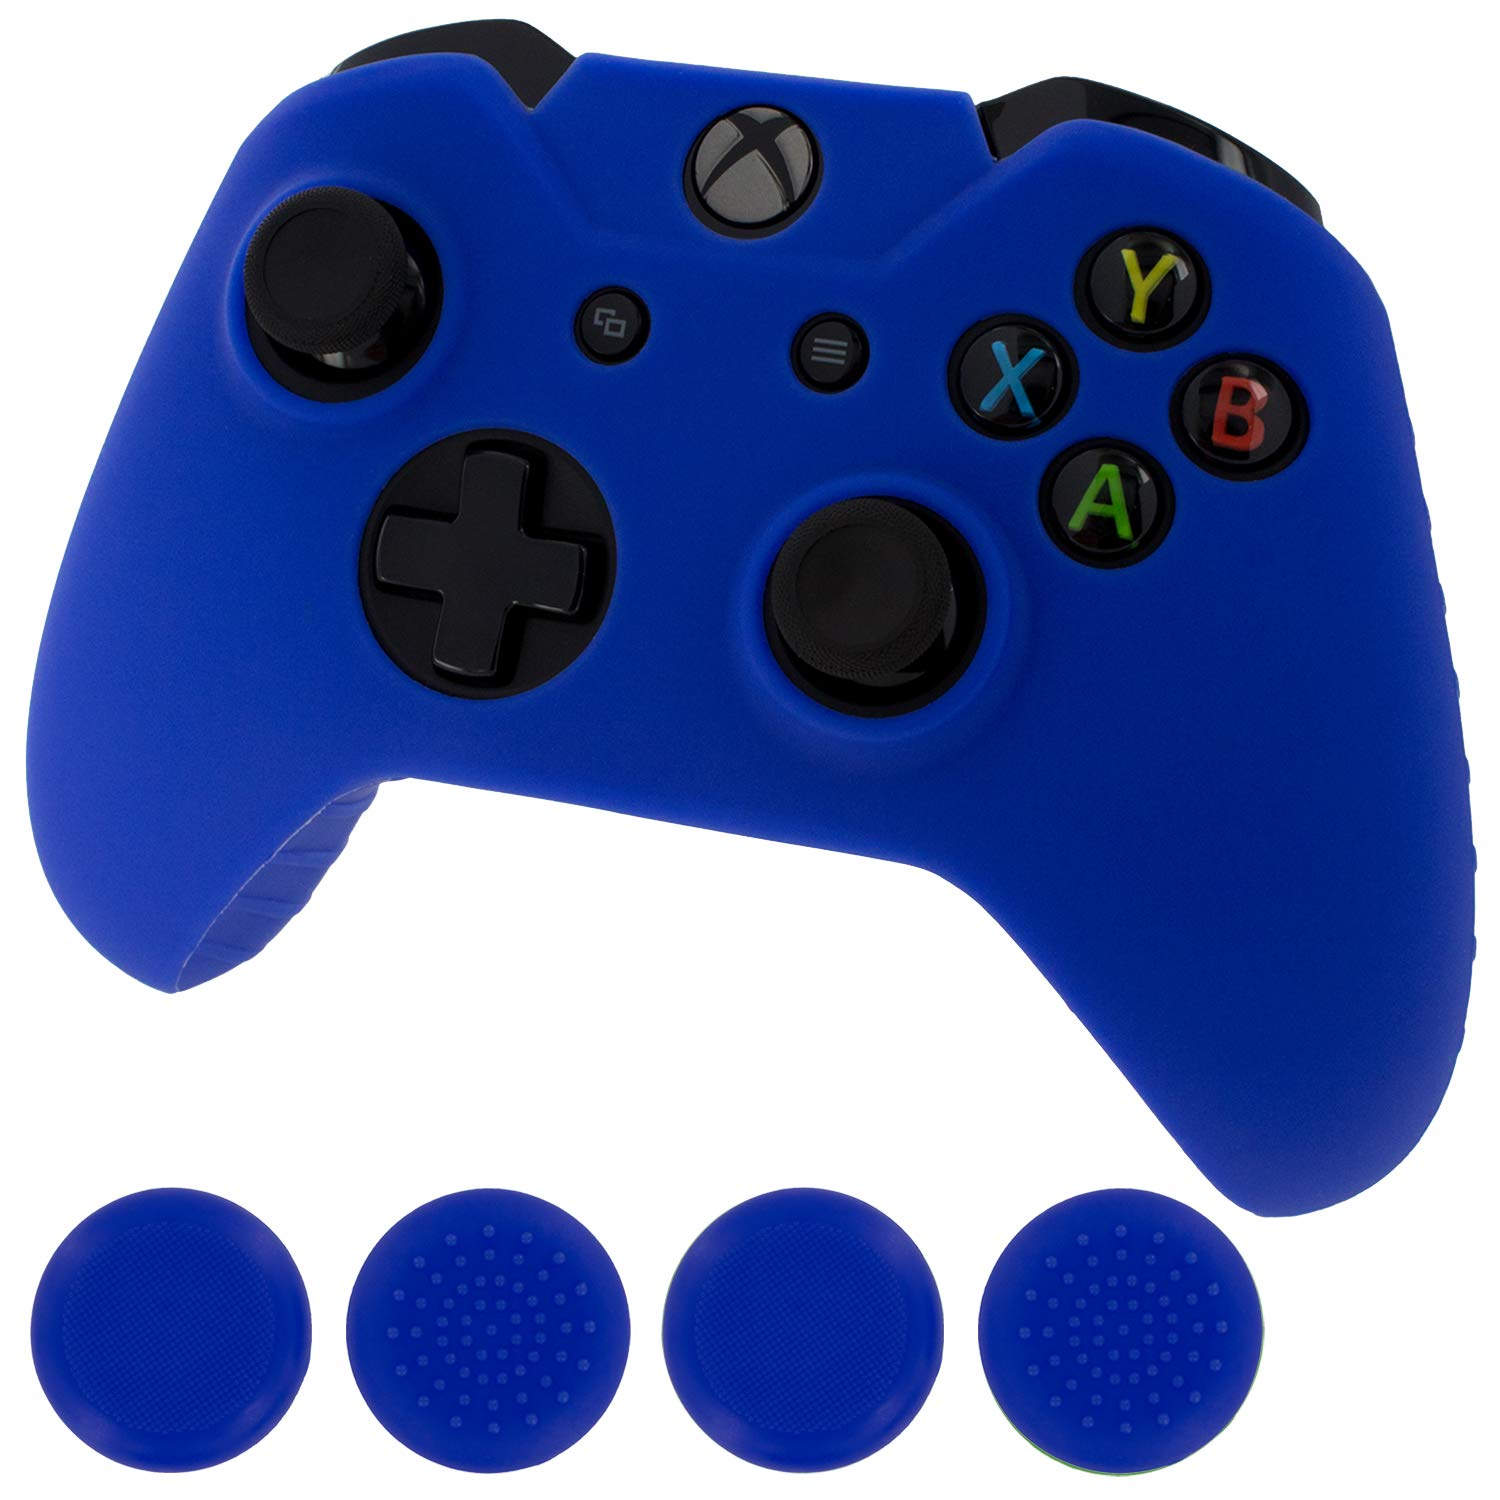 Assecure blue protect & grip pack soft silicone skin grip protective cover rubber bumper case with ribbed handle grip & TPU analogue thumb grip stick caps for Microsoft Xbox One controller by Assecure